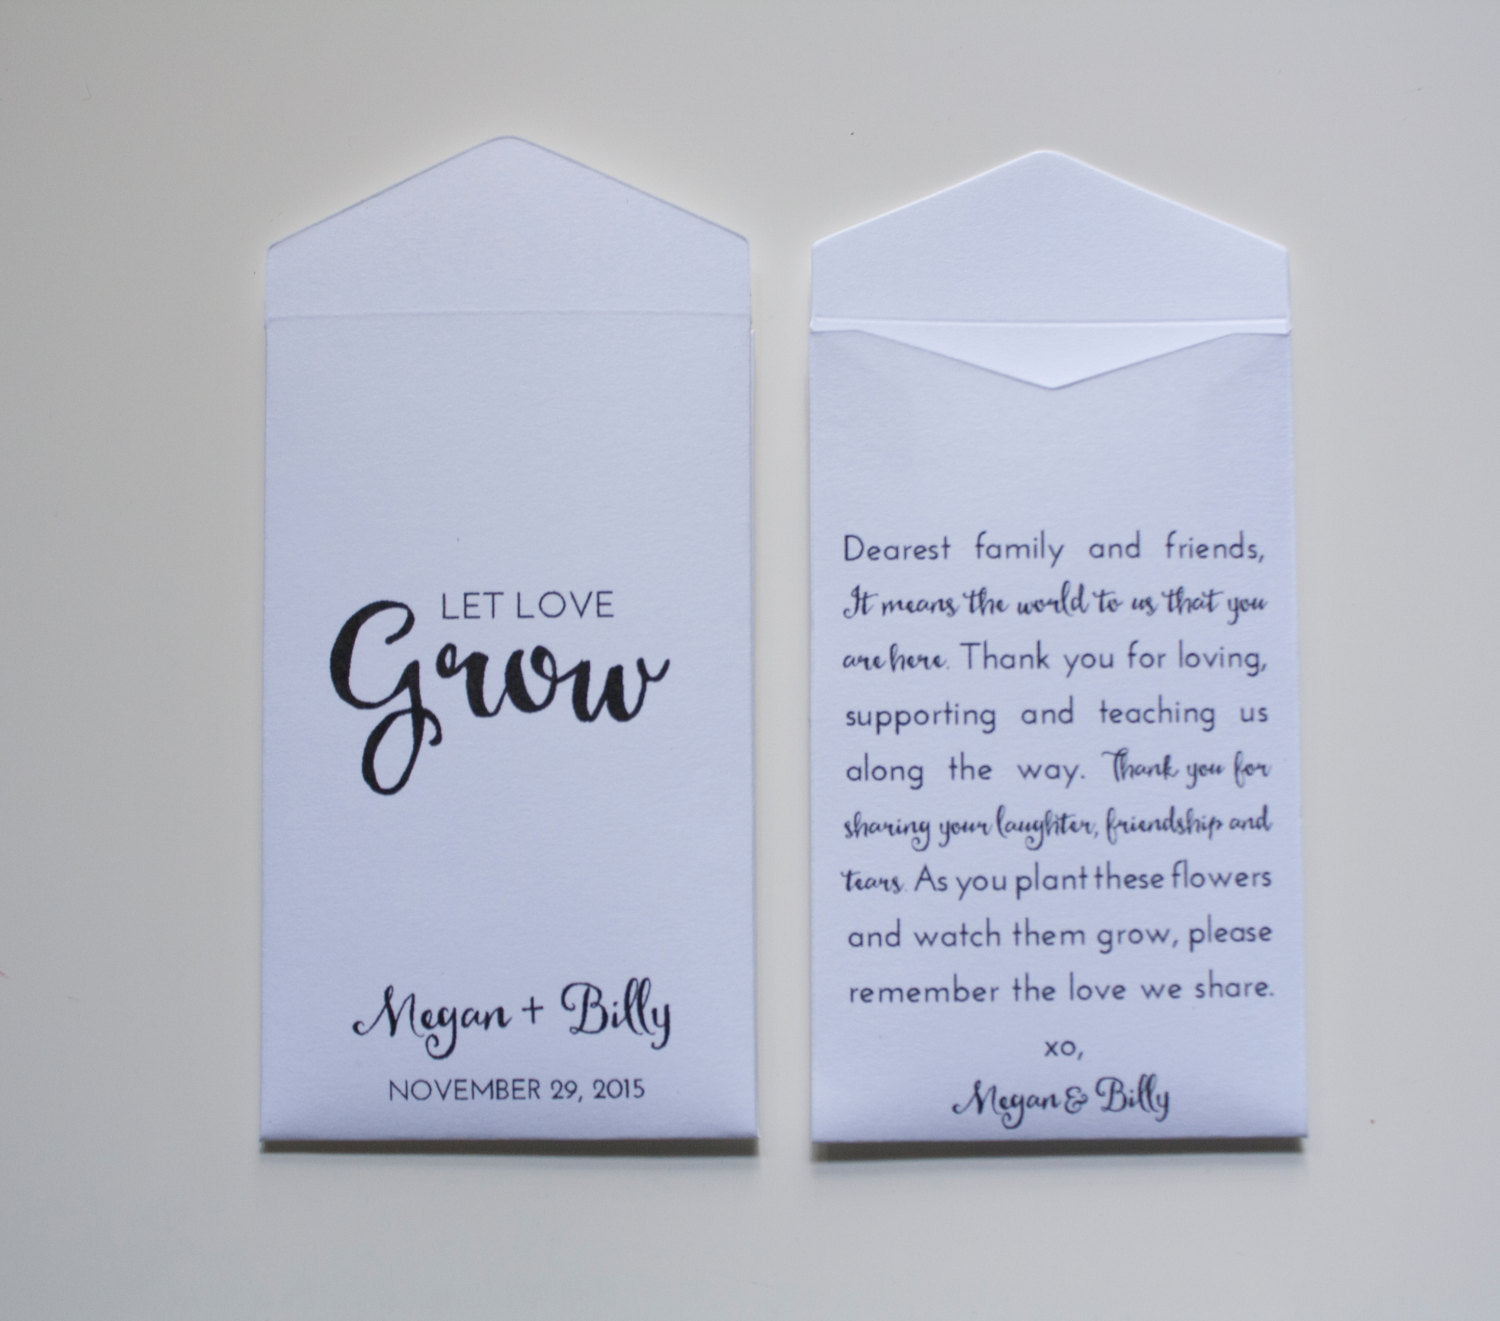 Let Love Grow White Personalized Seed Packet Wedding Favors - Rustic Seed Packet Wedding Favor - Thoughtful Favor - Many Colors Available